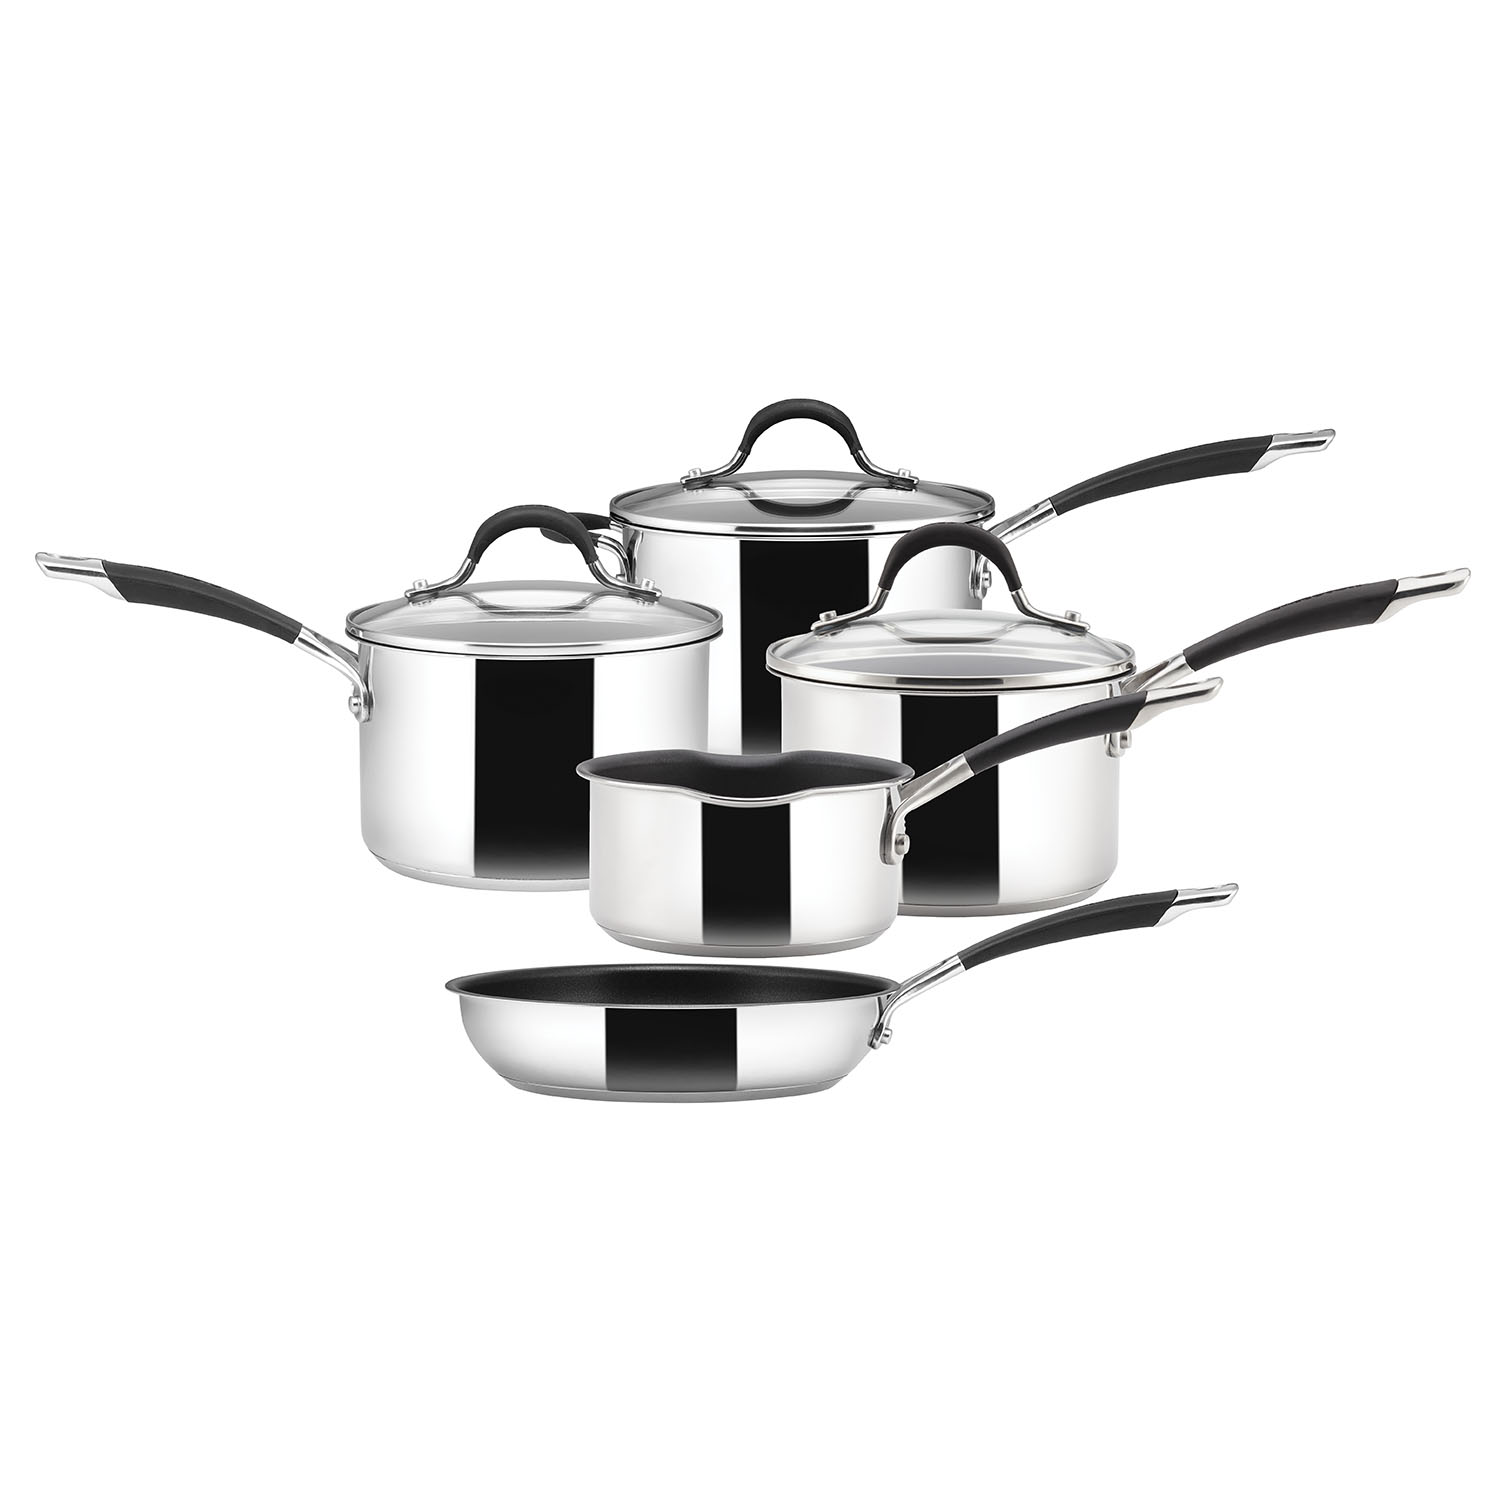 Image of Circulon Momentum 5 Piece Stainless Steel Saucepans Set